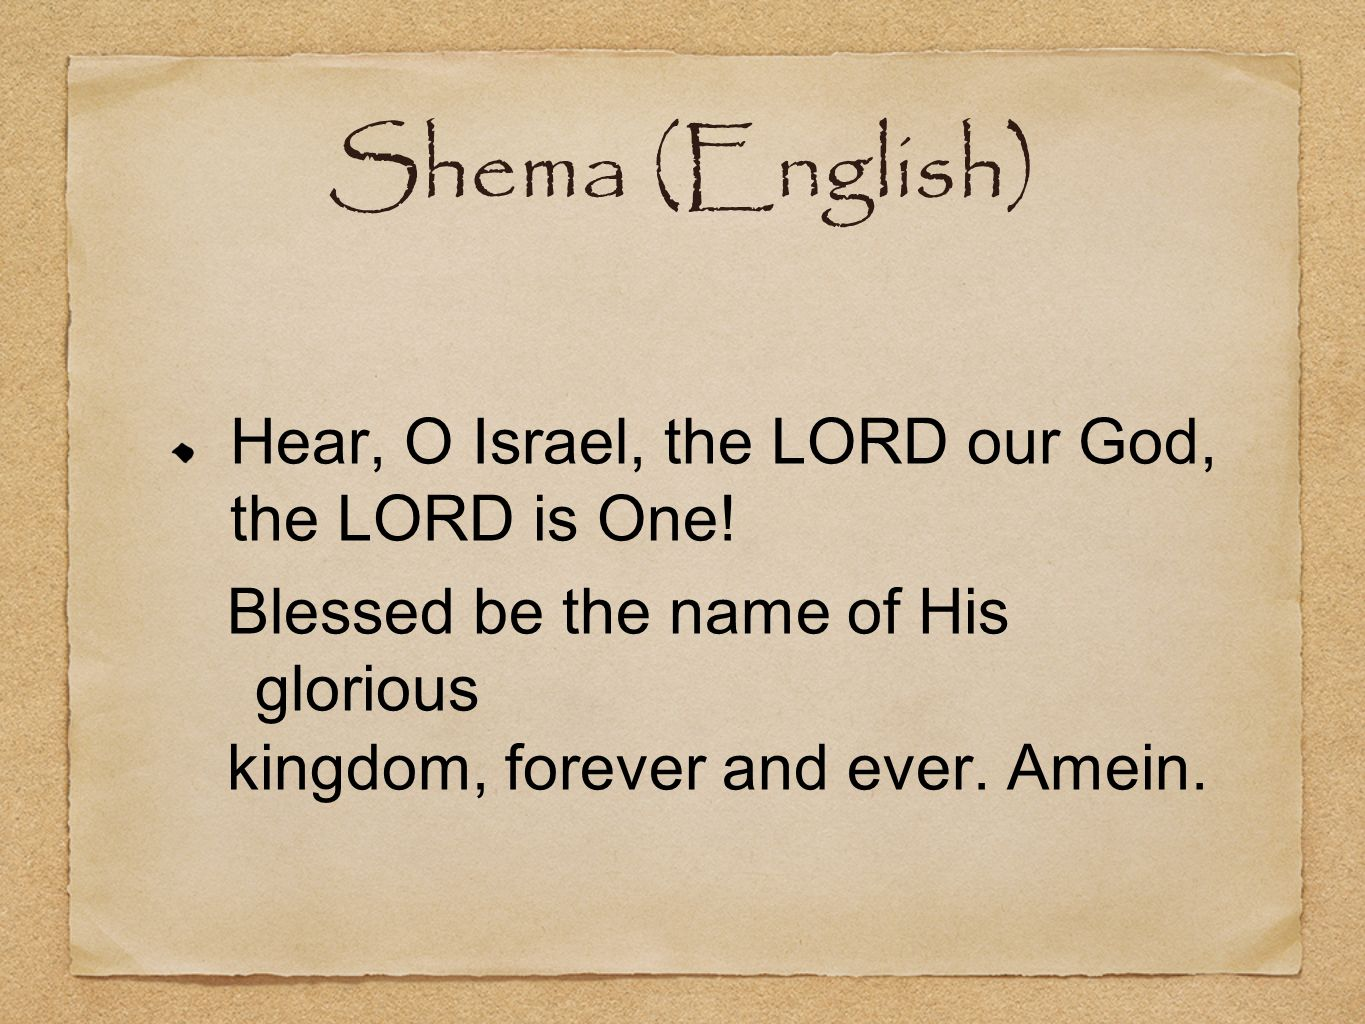 Shema (English) Hear, O Israel, the LORD our God, the LORD is One!